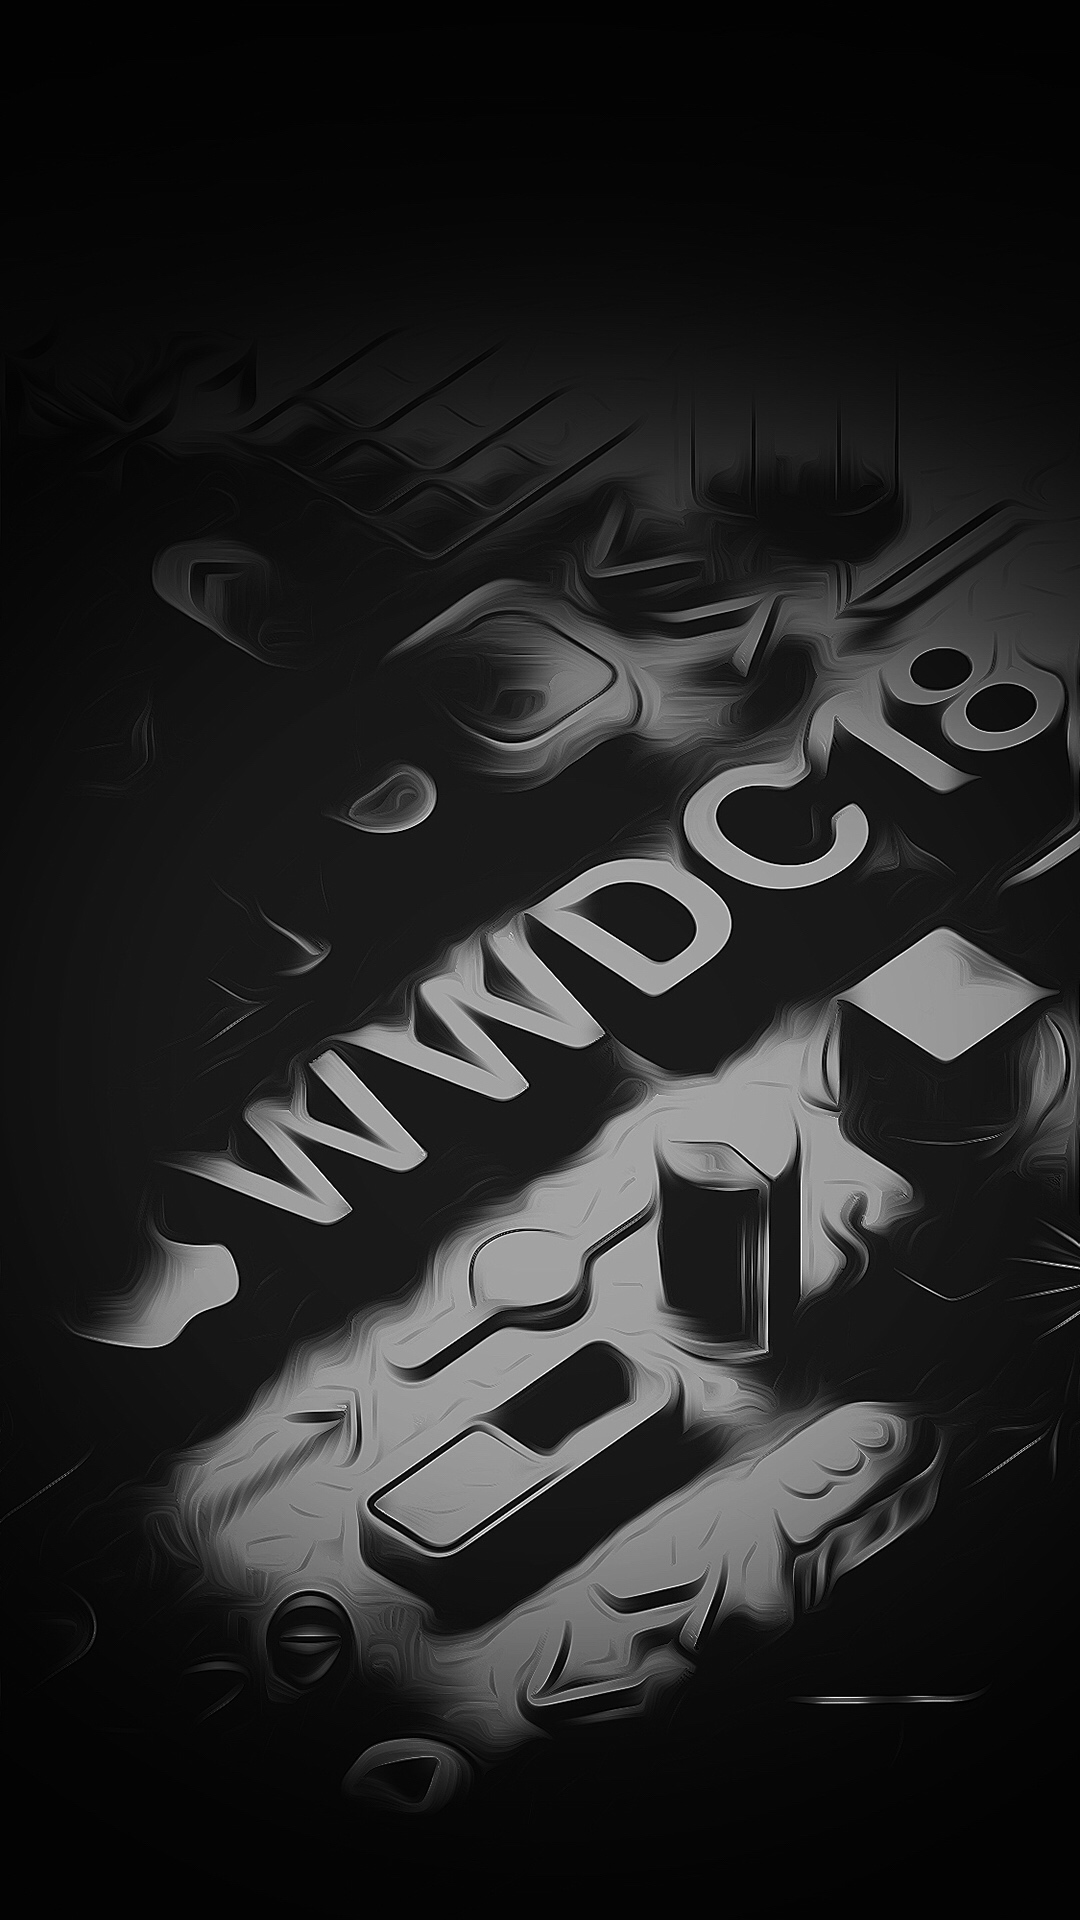 iPhone wallpaper wwdc18 black 3Wallpapers : notre sélection de fonds d'écran du 16/03/2018